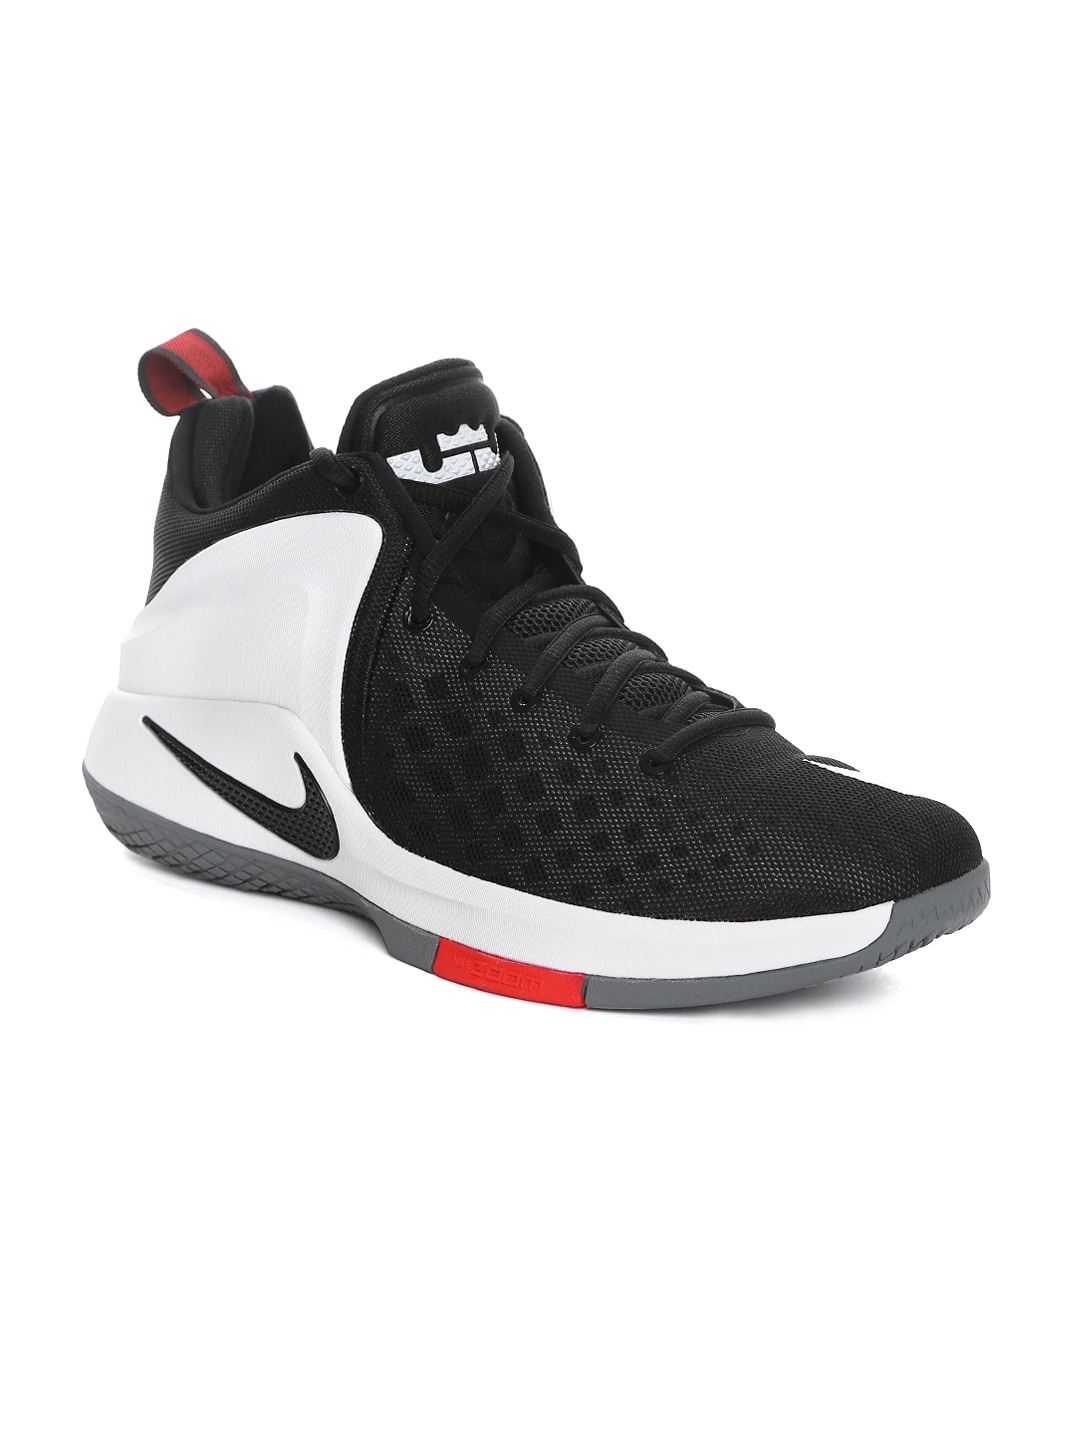 best service bf839 a9b08 Nike 852439-003 Men Black And White Zoom Witness Lebron James Mid Top  Basketball Shoes- Price in India